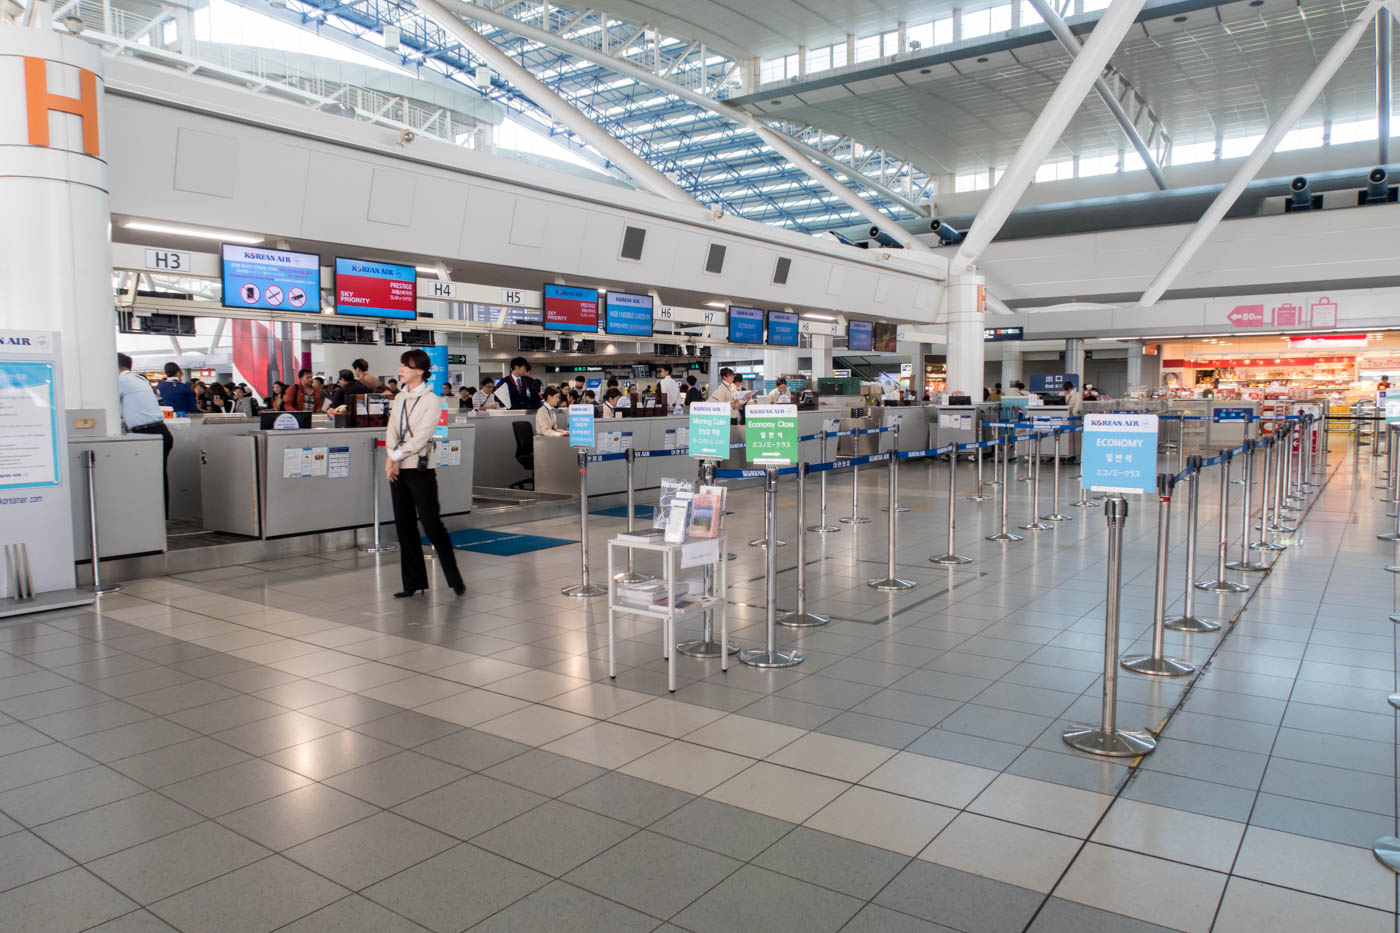 Korean Air Check-in Counters at Fukuoka Airport